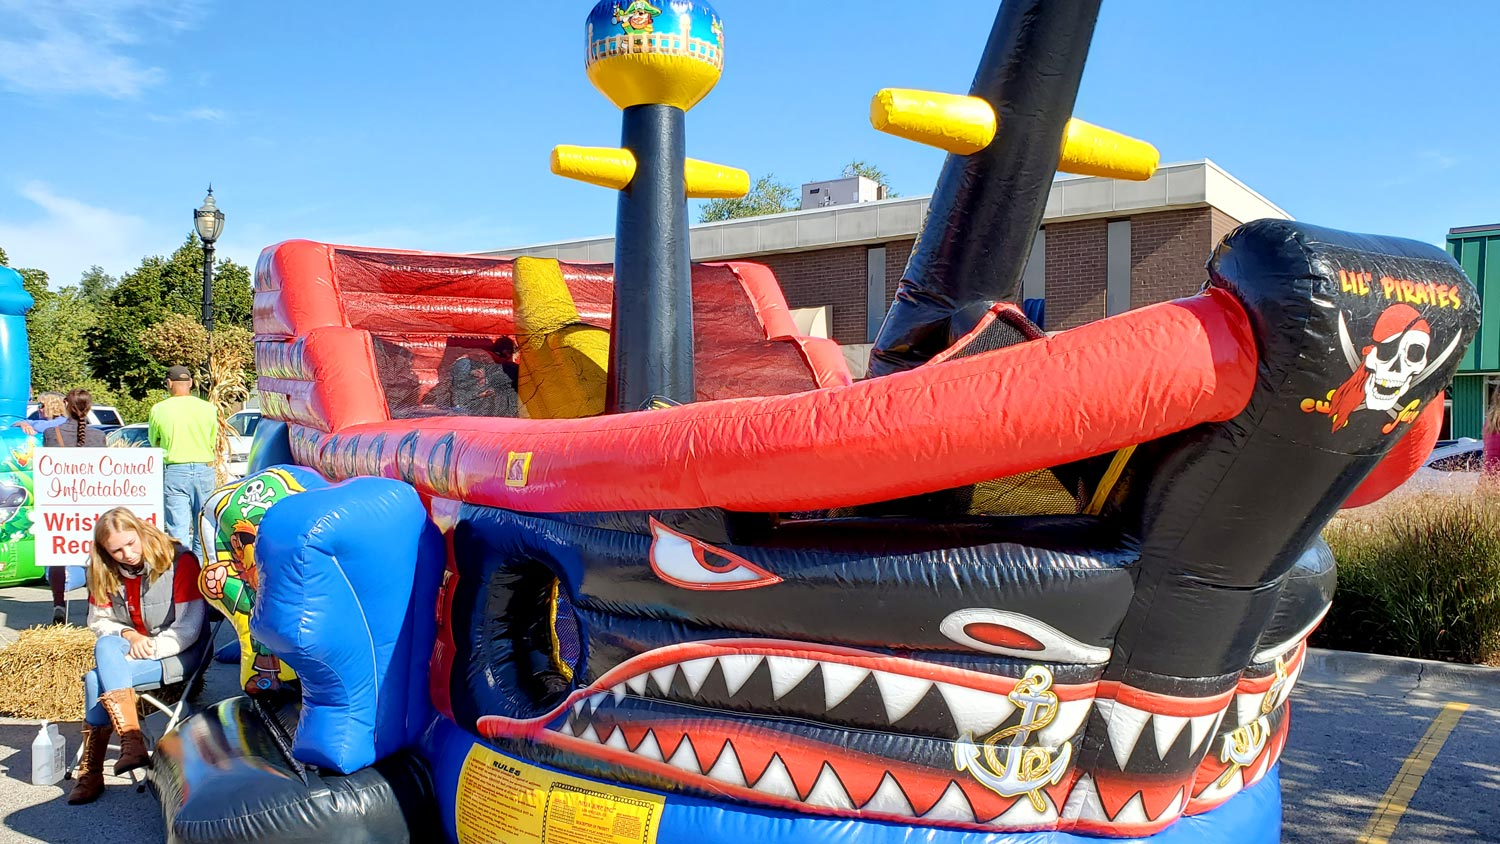 Inflatable pirate ship.